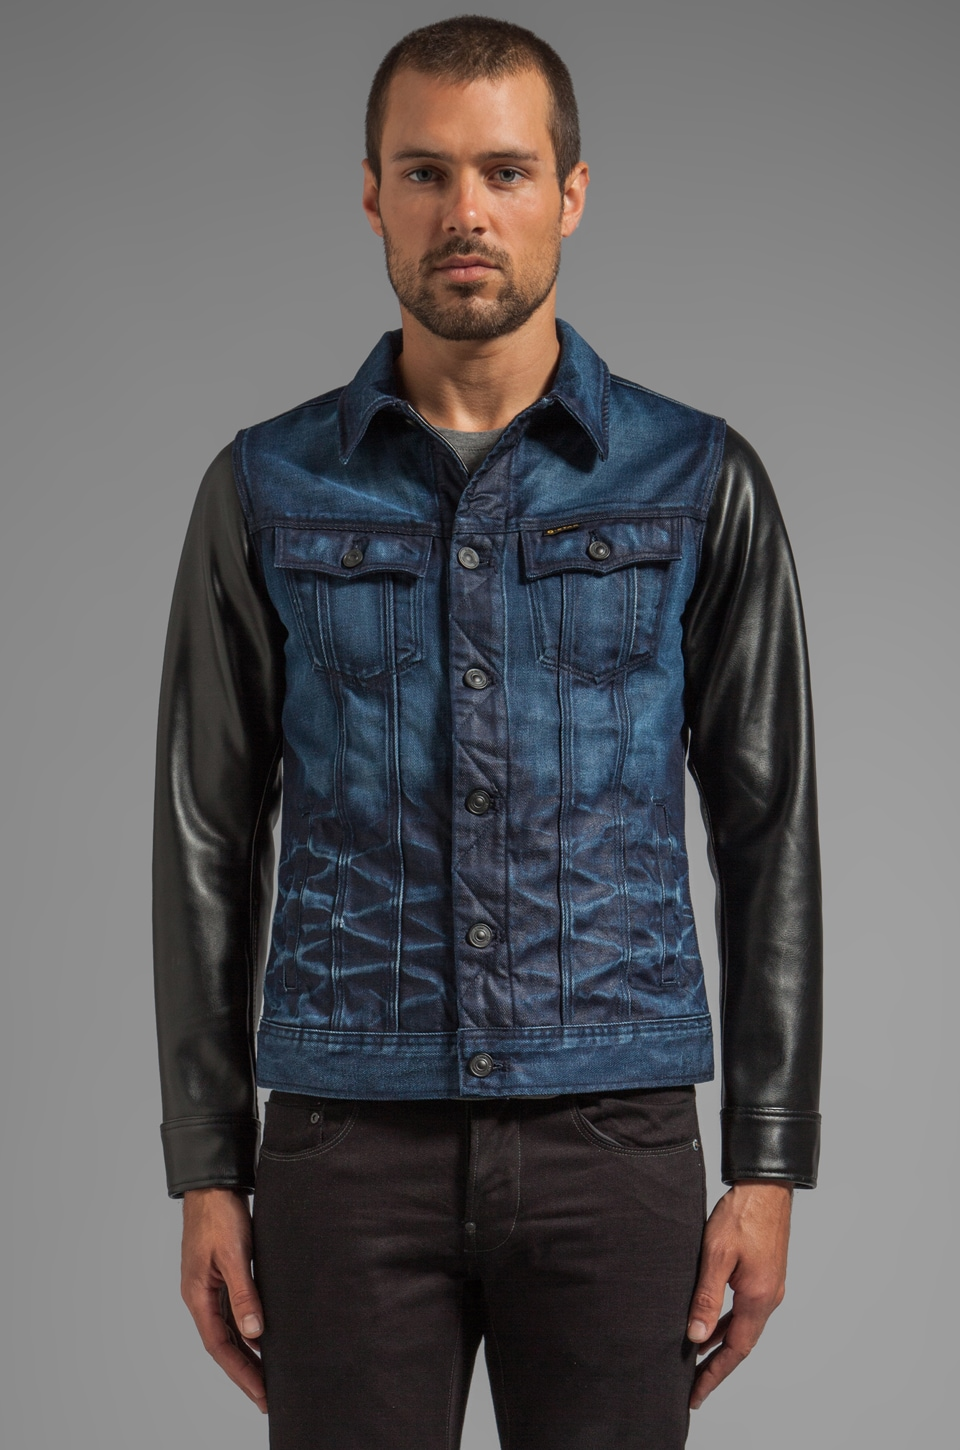 G-Star Slim Tailor Leather Sleeve Jacket in Dark Aged